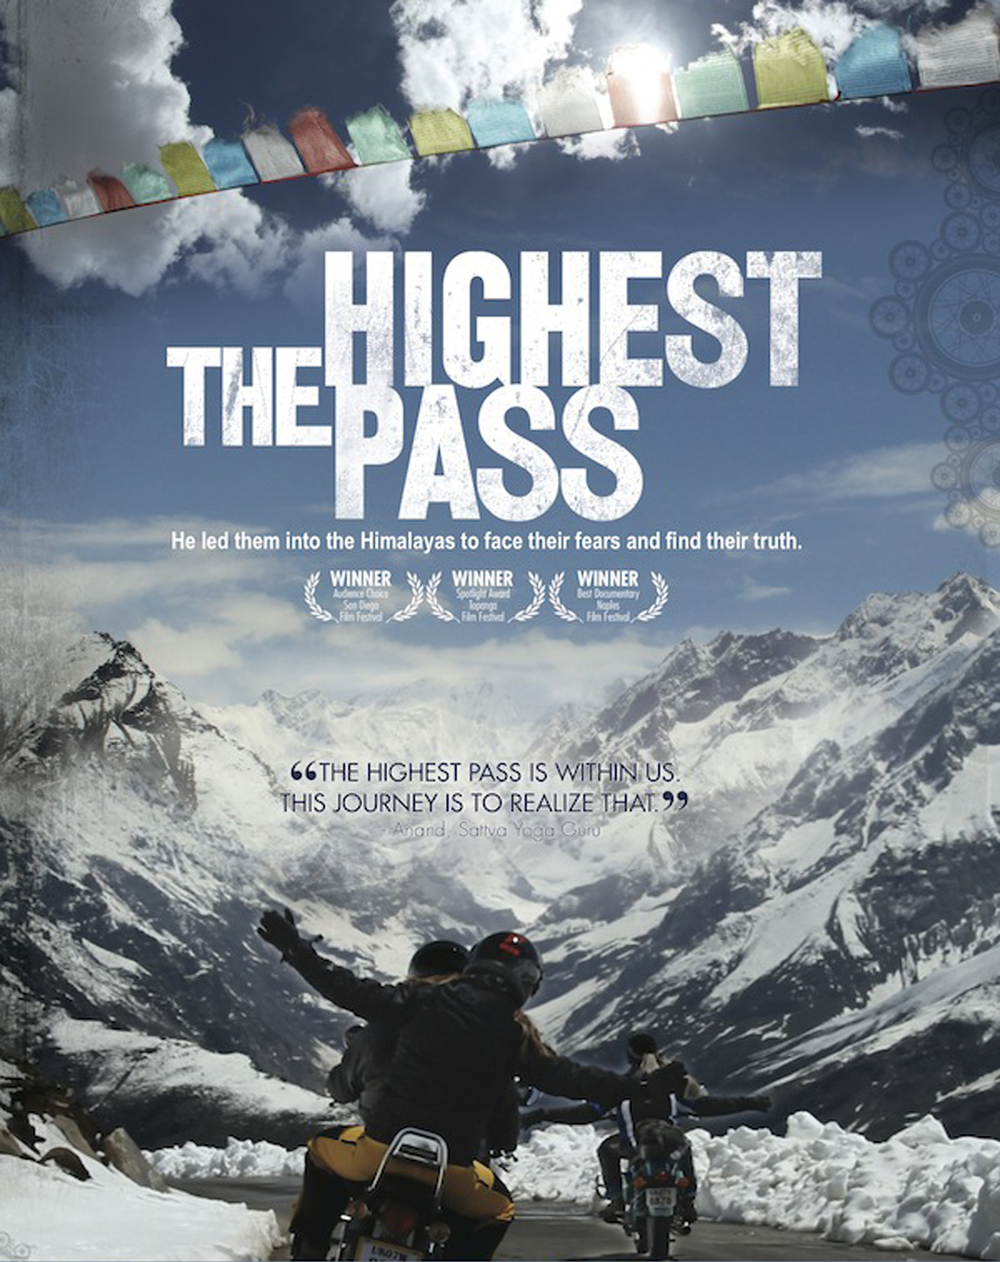 HighestPass_Poster_cropped.jpg